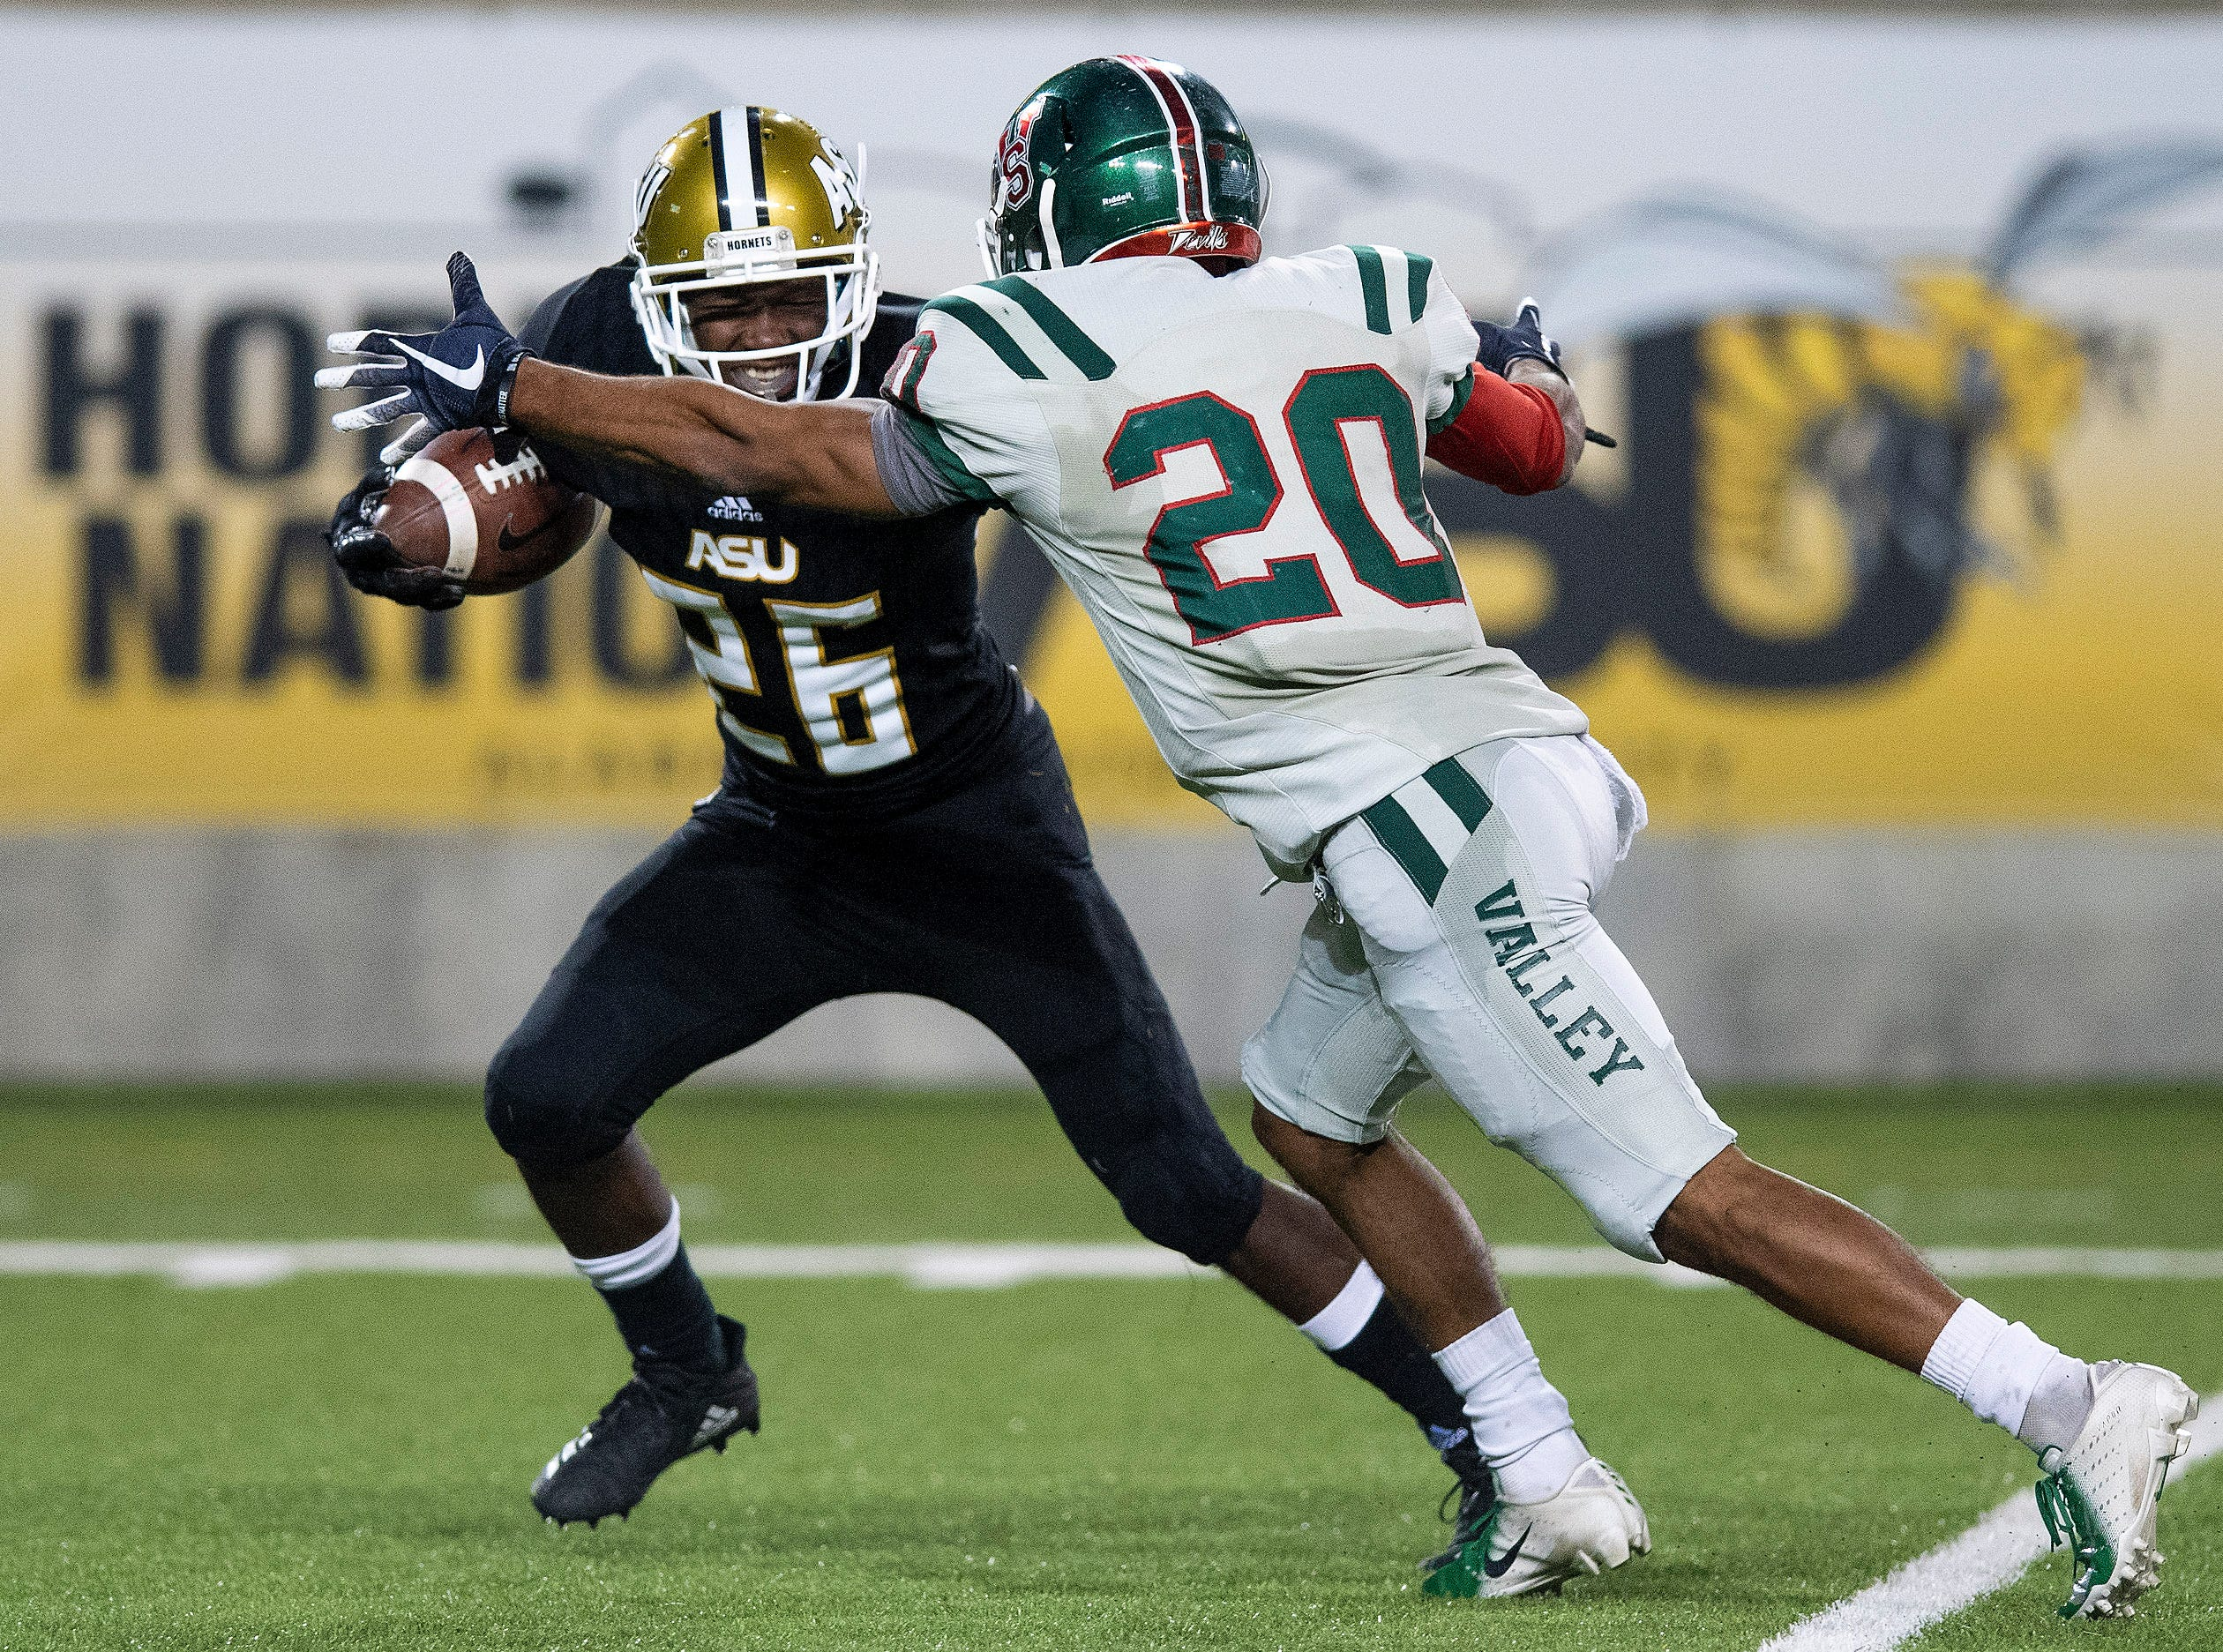 Alabama State University defensive back Kimar Martin (26) intercepts a pass late in the game against Mississippi Valley State in the Turkey Day Classic at Hornet Stadium on the ASU campus in Montgomery, Ala., on Thanksgiving Day, Thursday November 22, 2018.